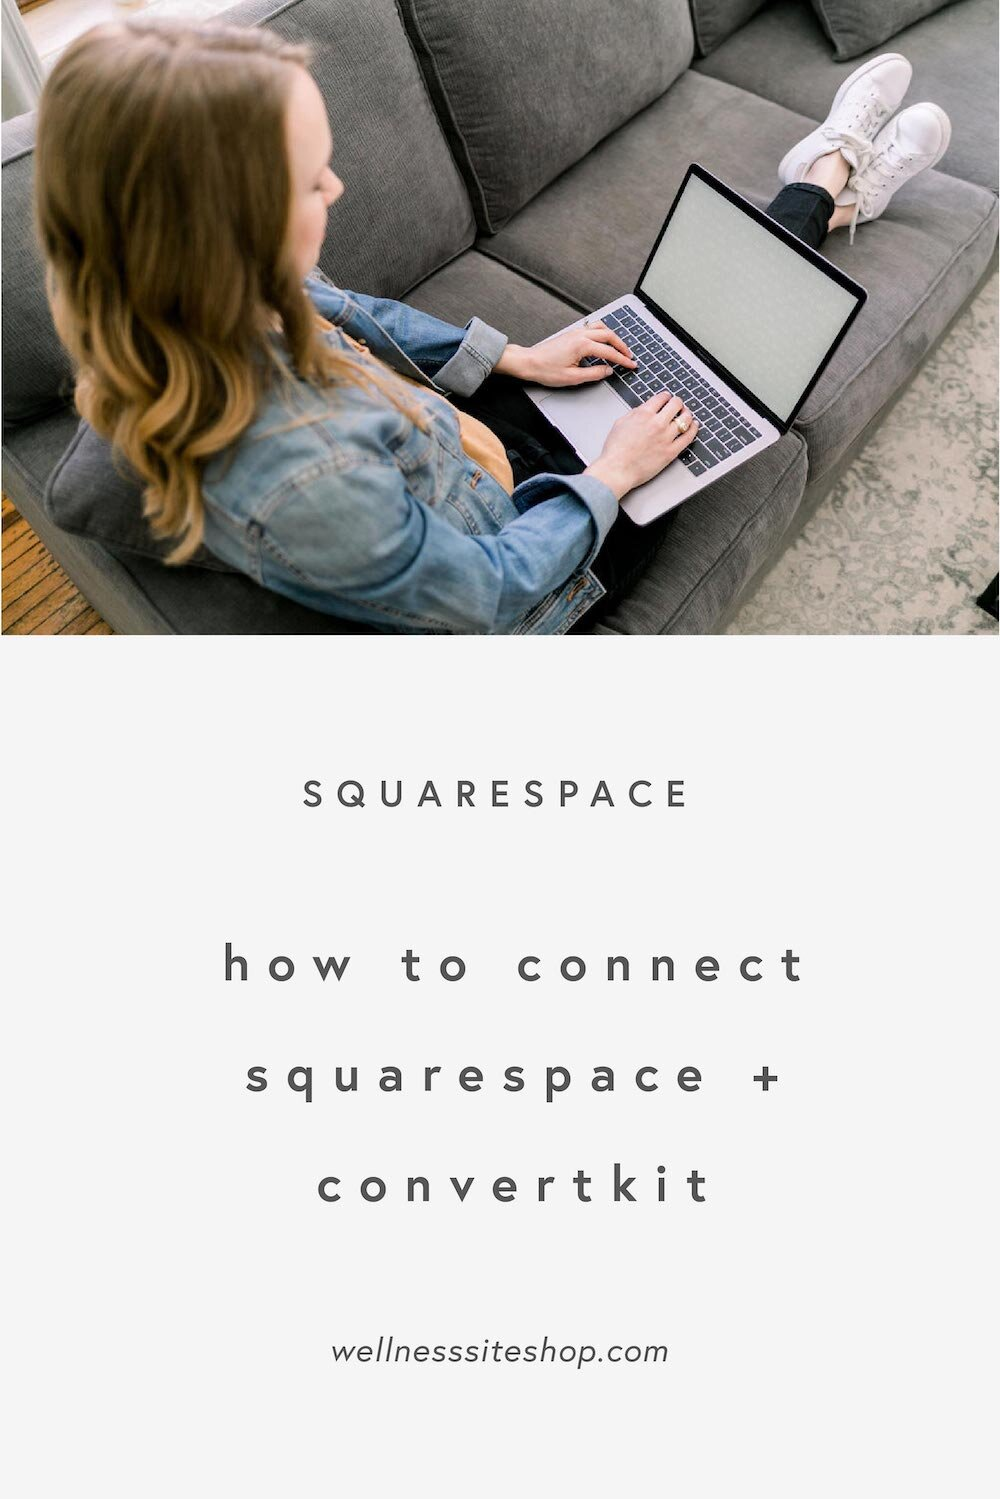 How to connect squarespace and convertkit.jpg